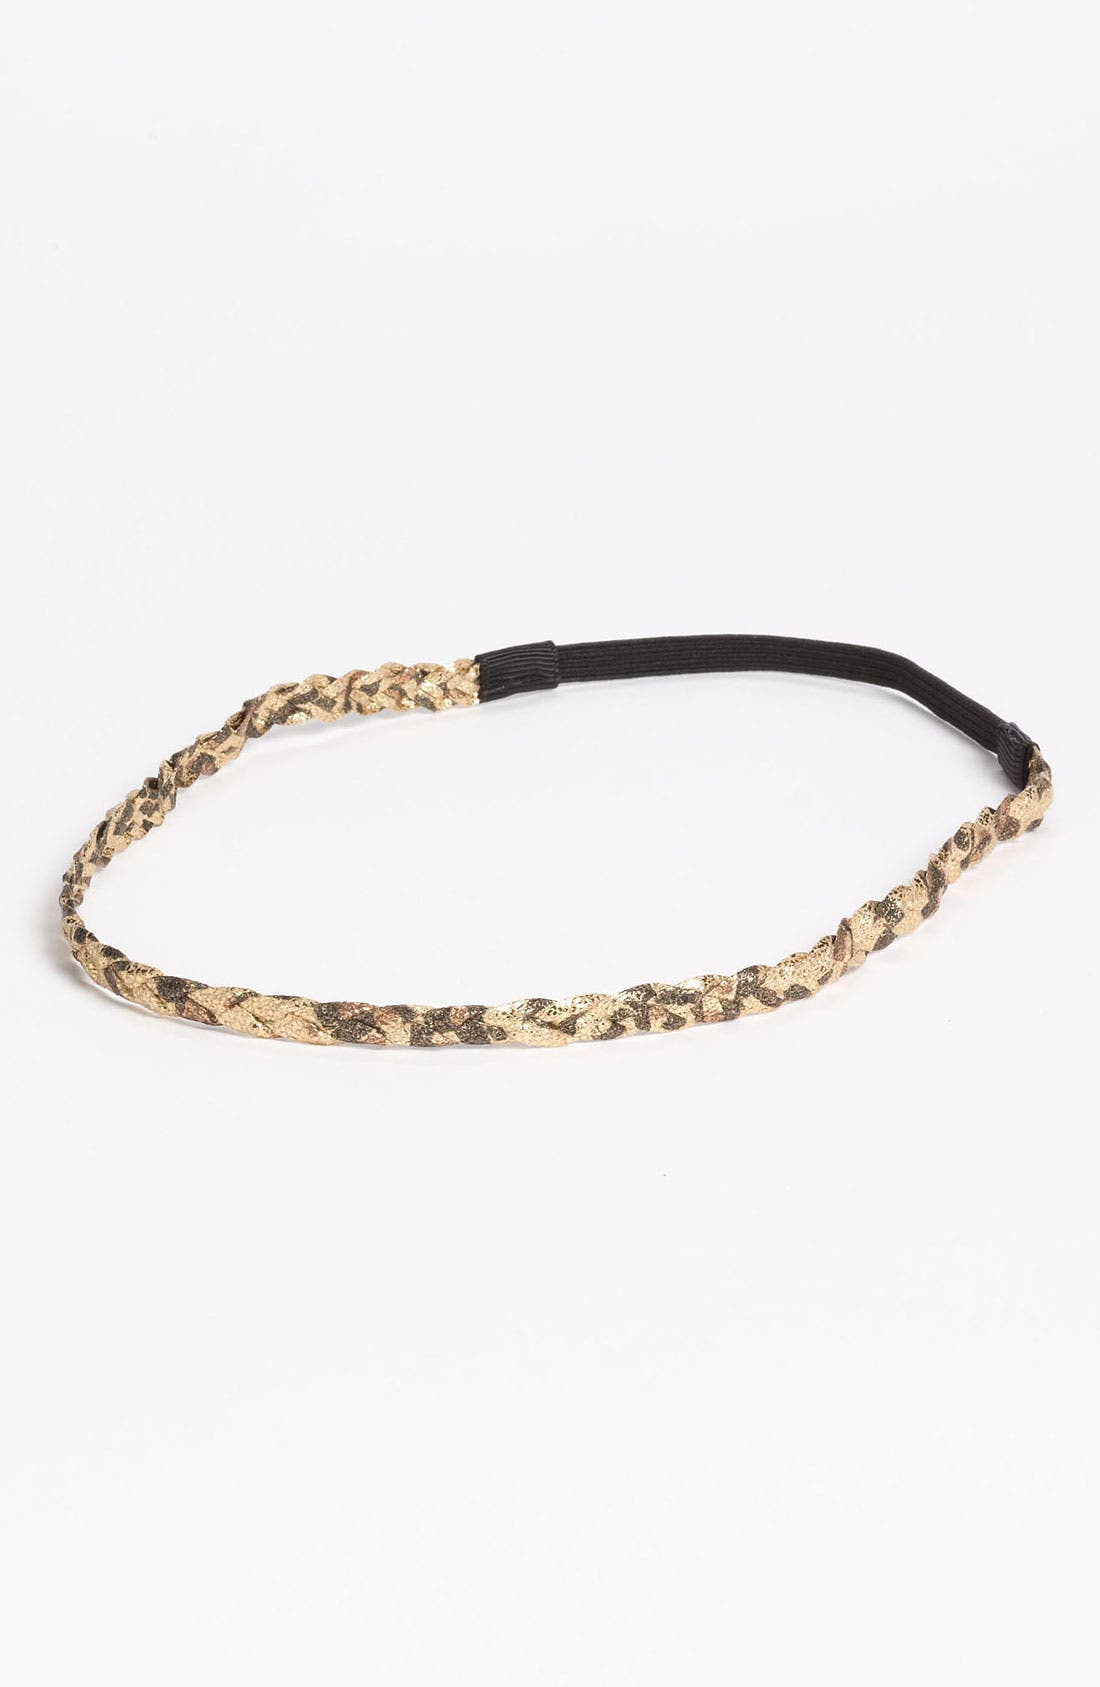 Main Image - Under One Sky Camo Sparkle Braided Headband